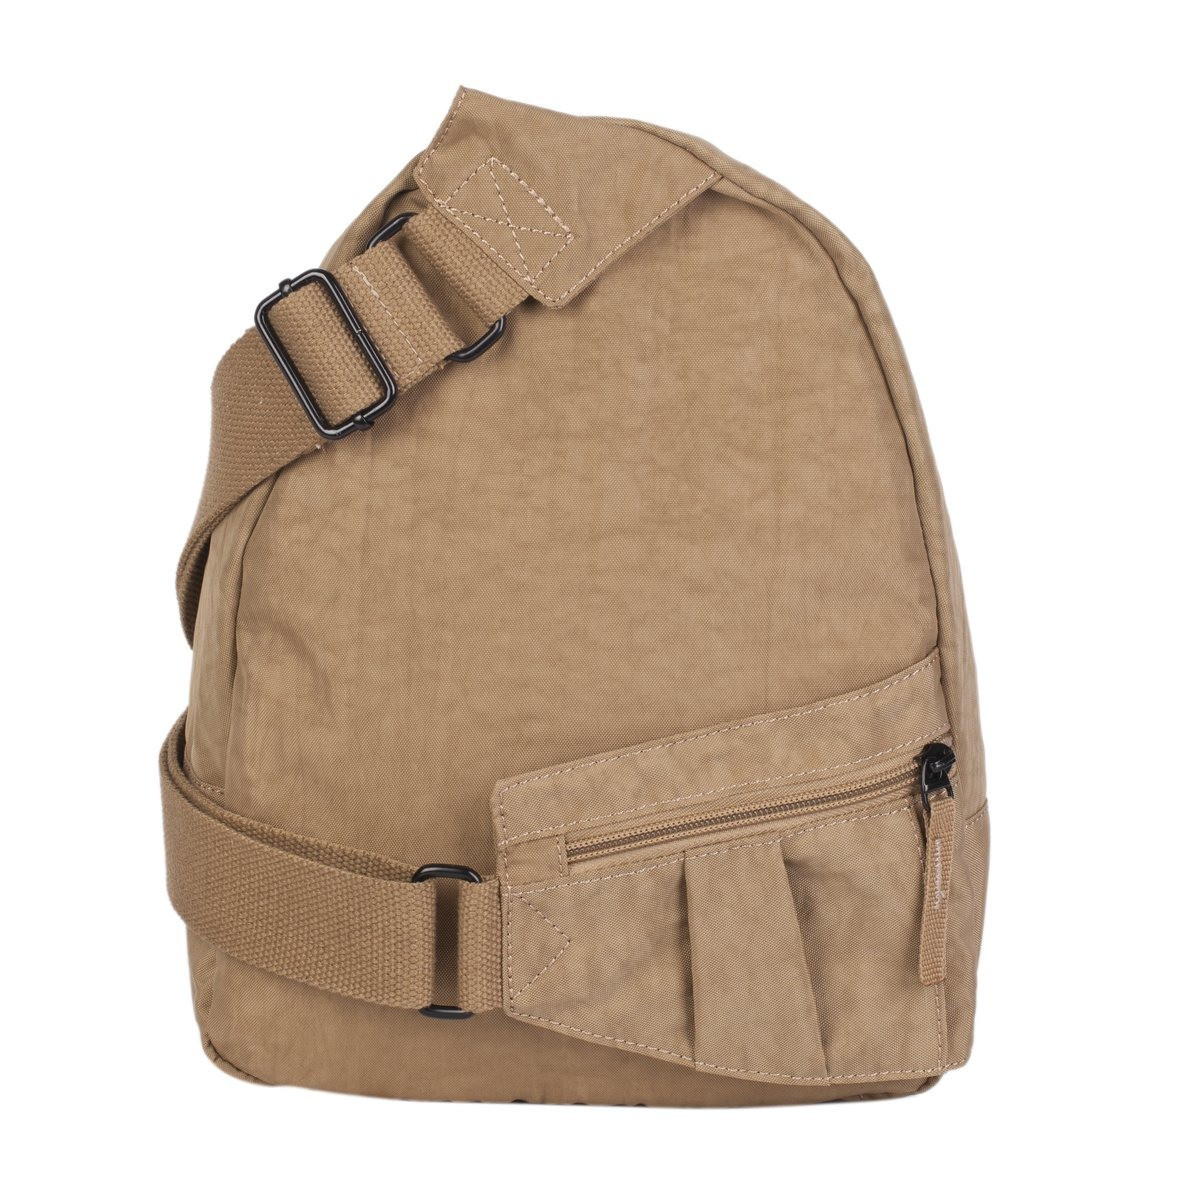 Small Backpack/shoulder Bag